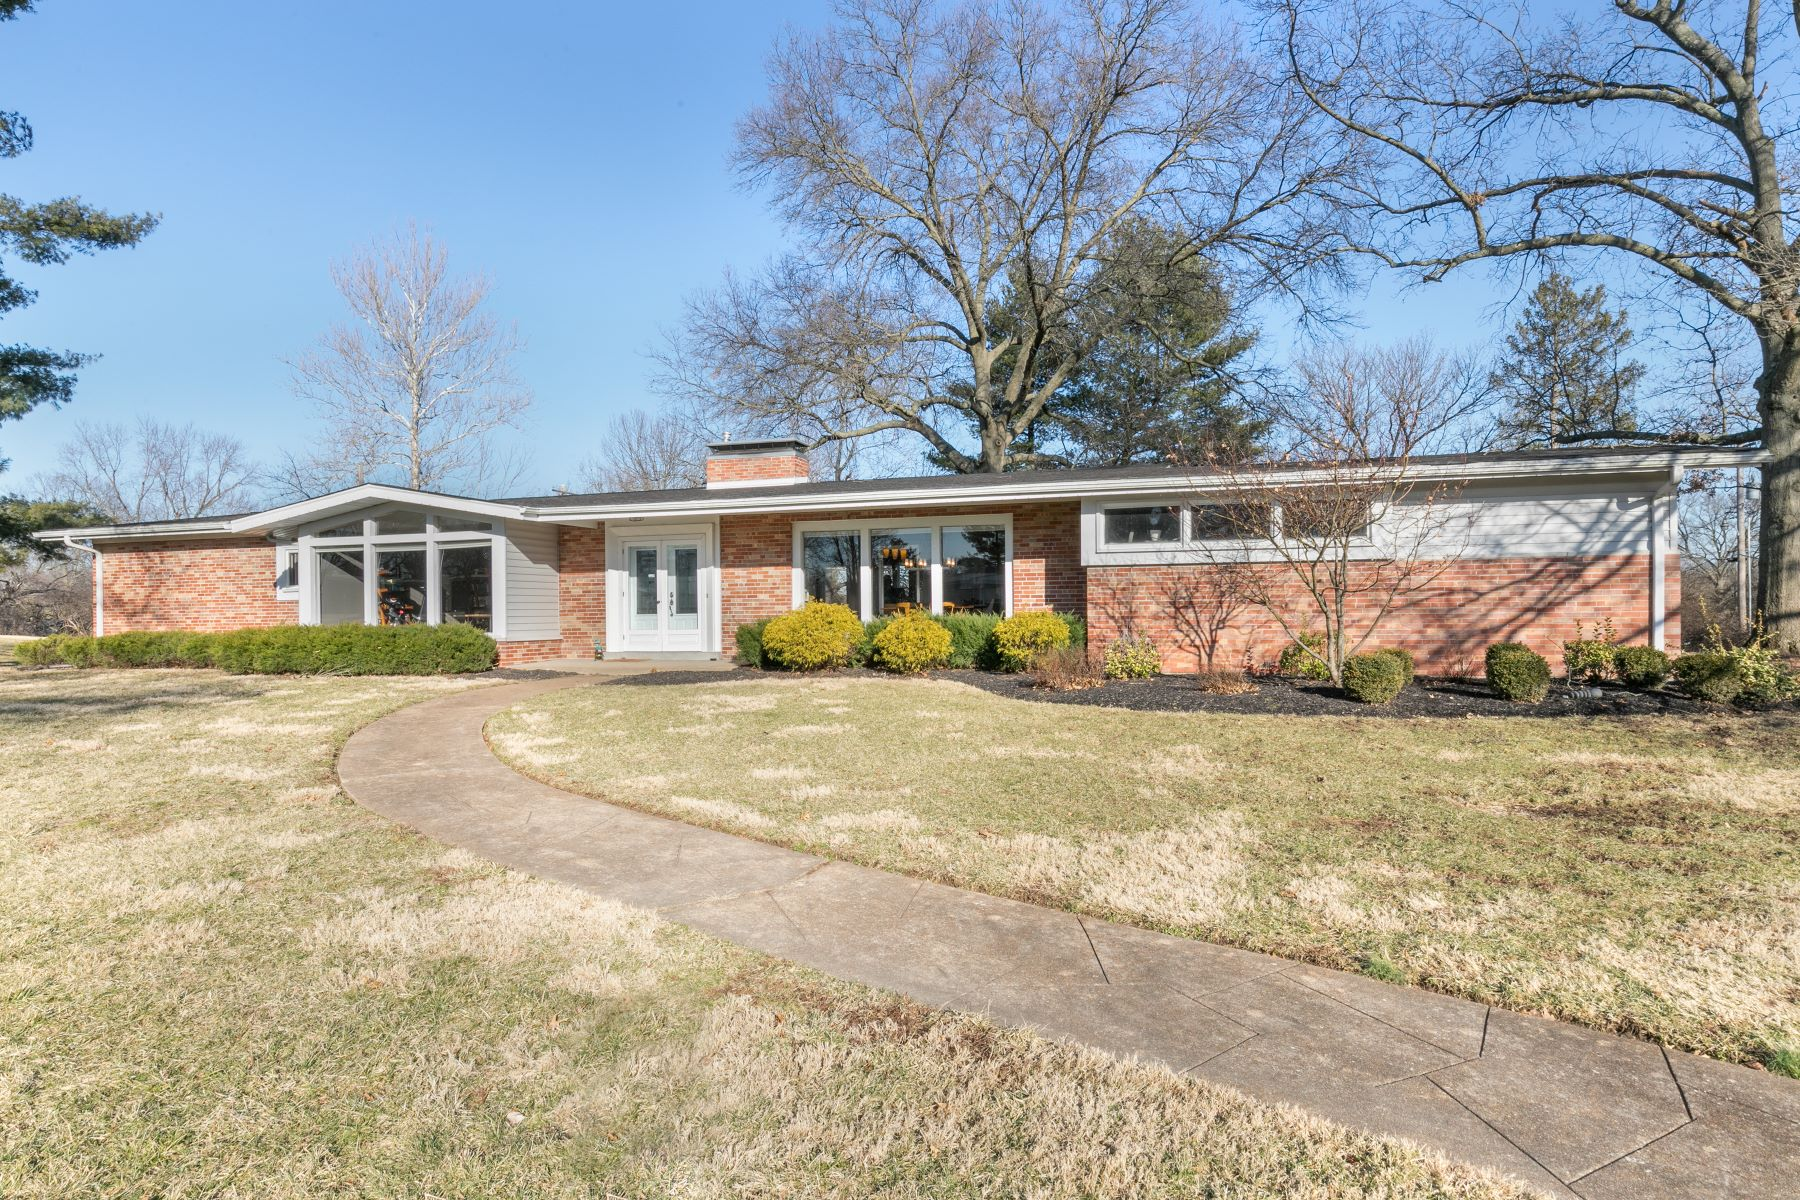 Single Family Home for Sale at Renovated Creve Coeur Ranch 6 Ladue Estates Drive Creve Coeur, Missouri 63141 United States